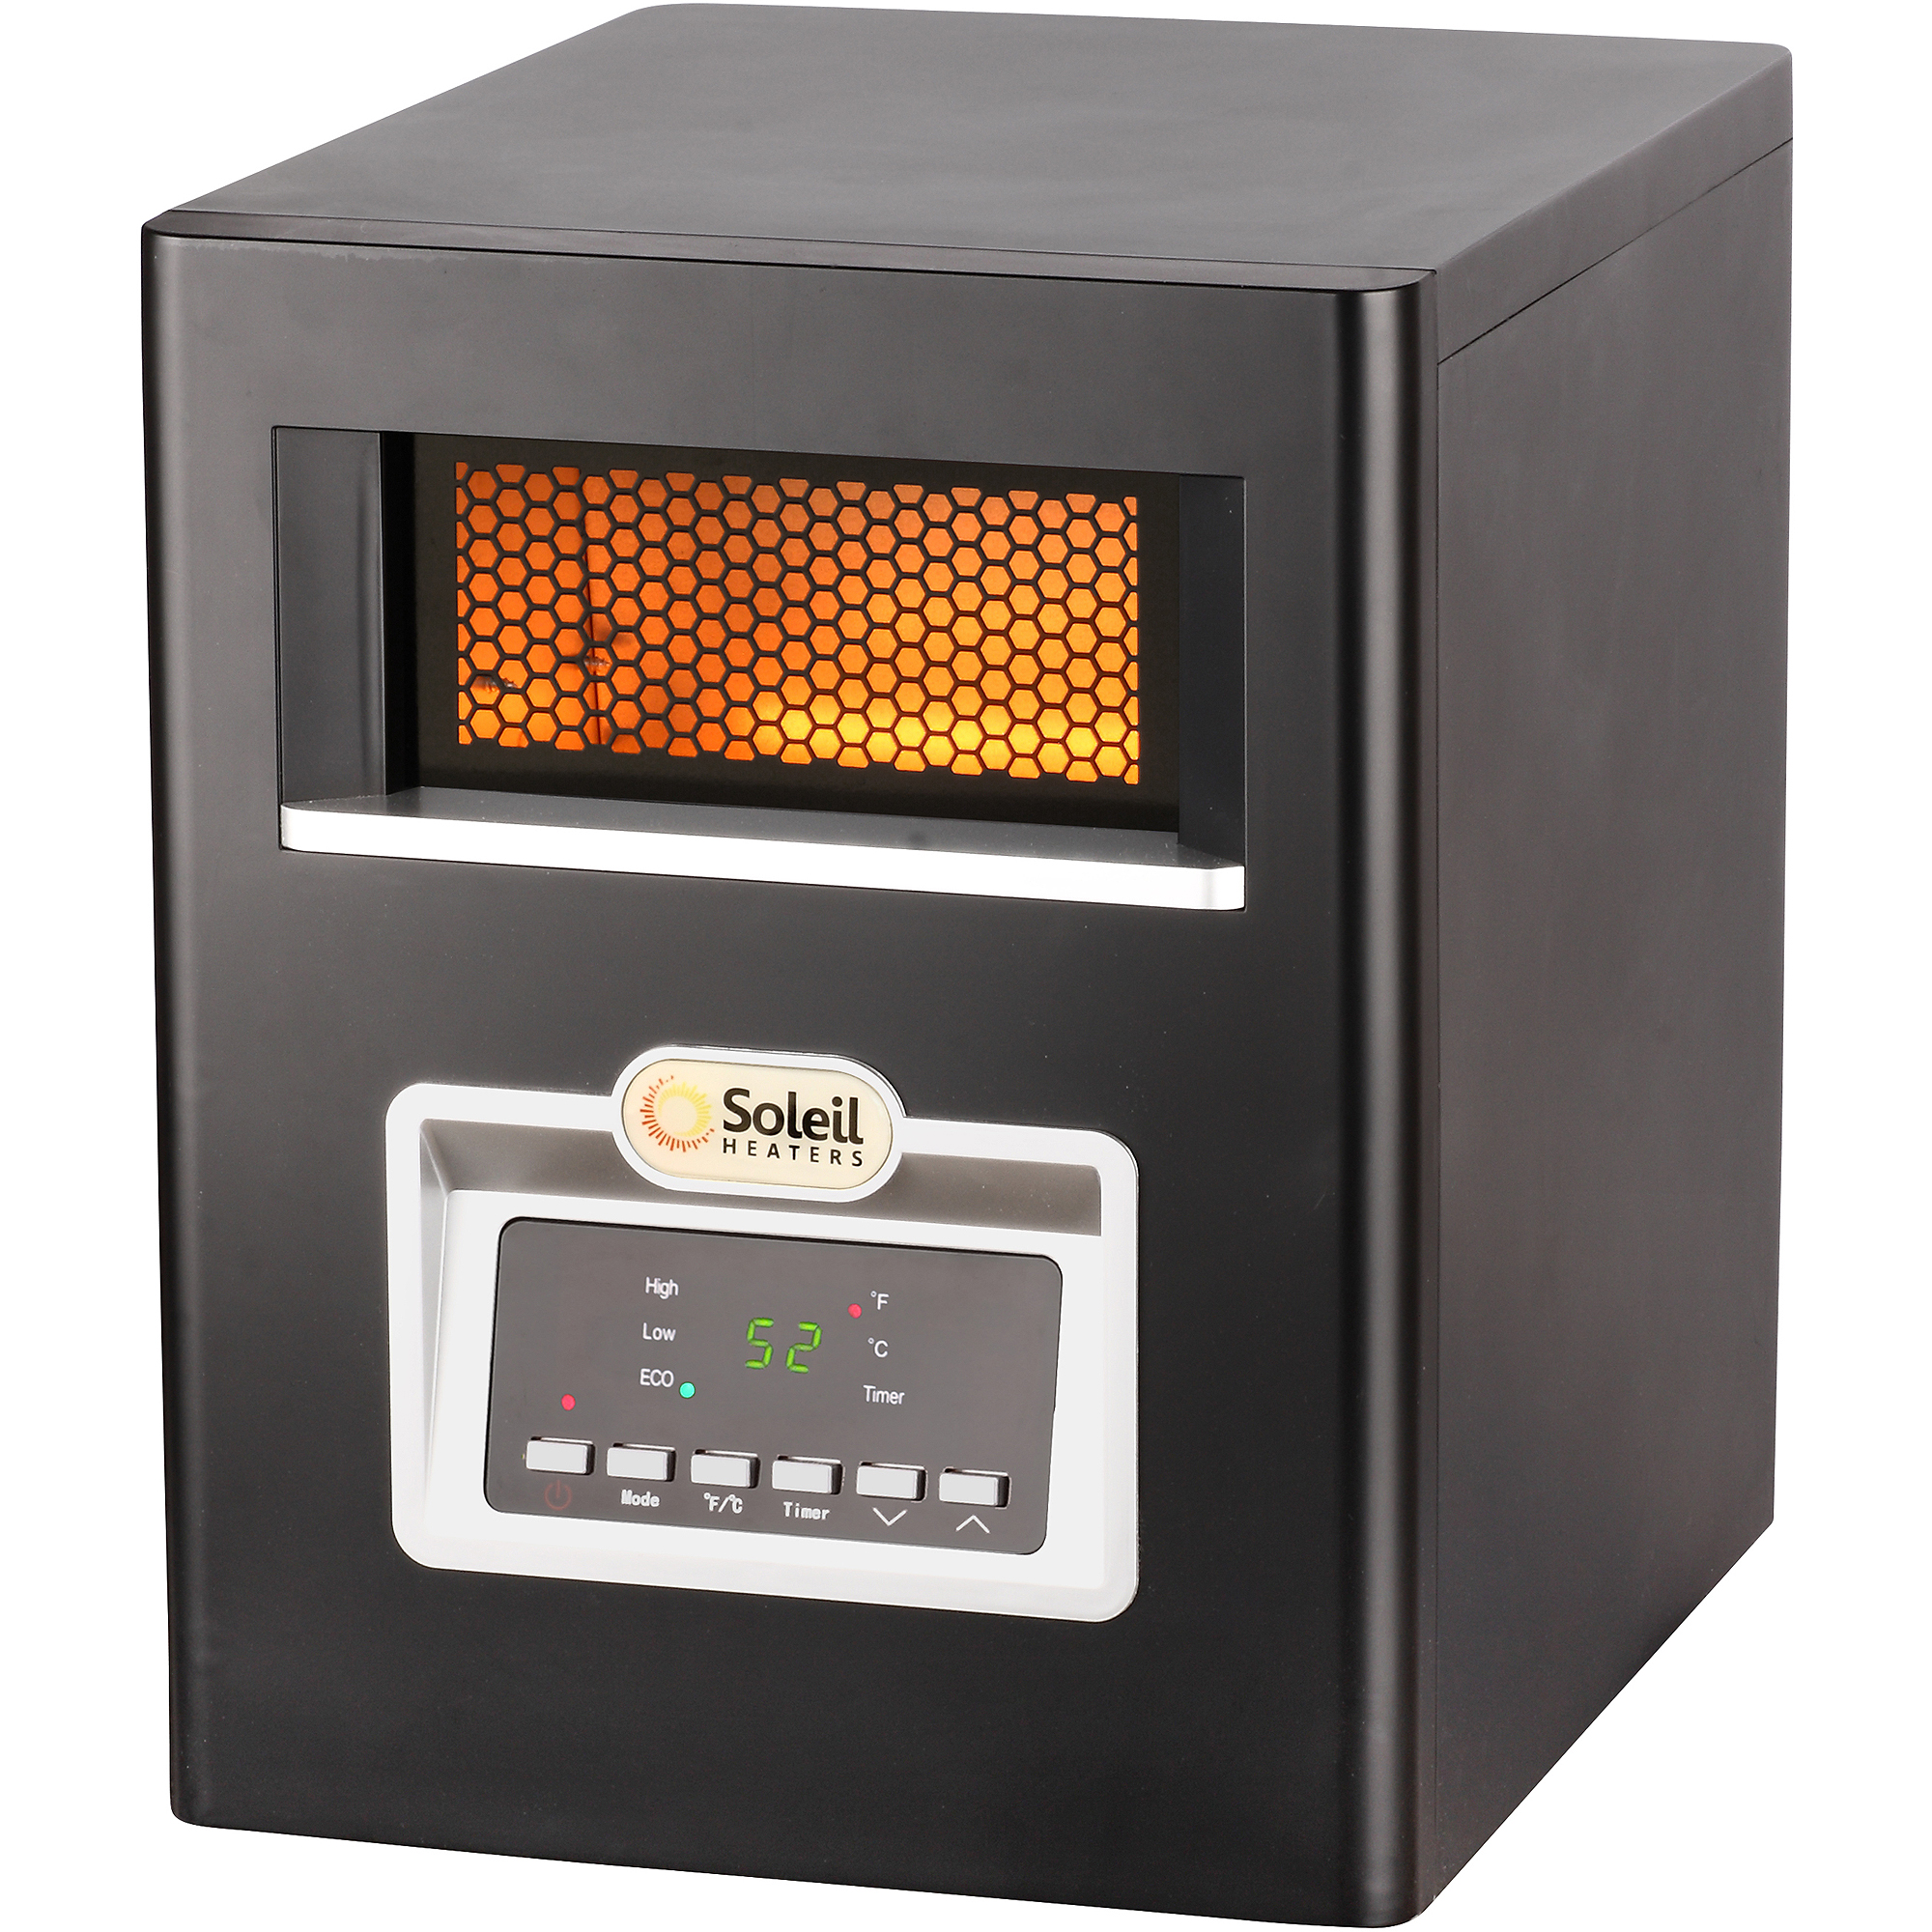 soleil electric infrared cabinet space heater, 1500w, ph 91f residential electrical wiring codes soleil electric infrared cabinet space heater, 1500w, ph 91f